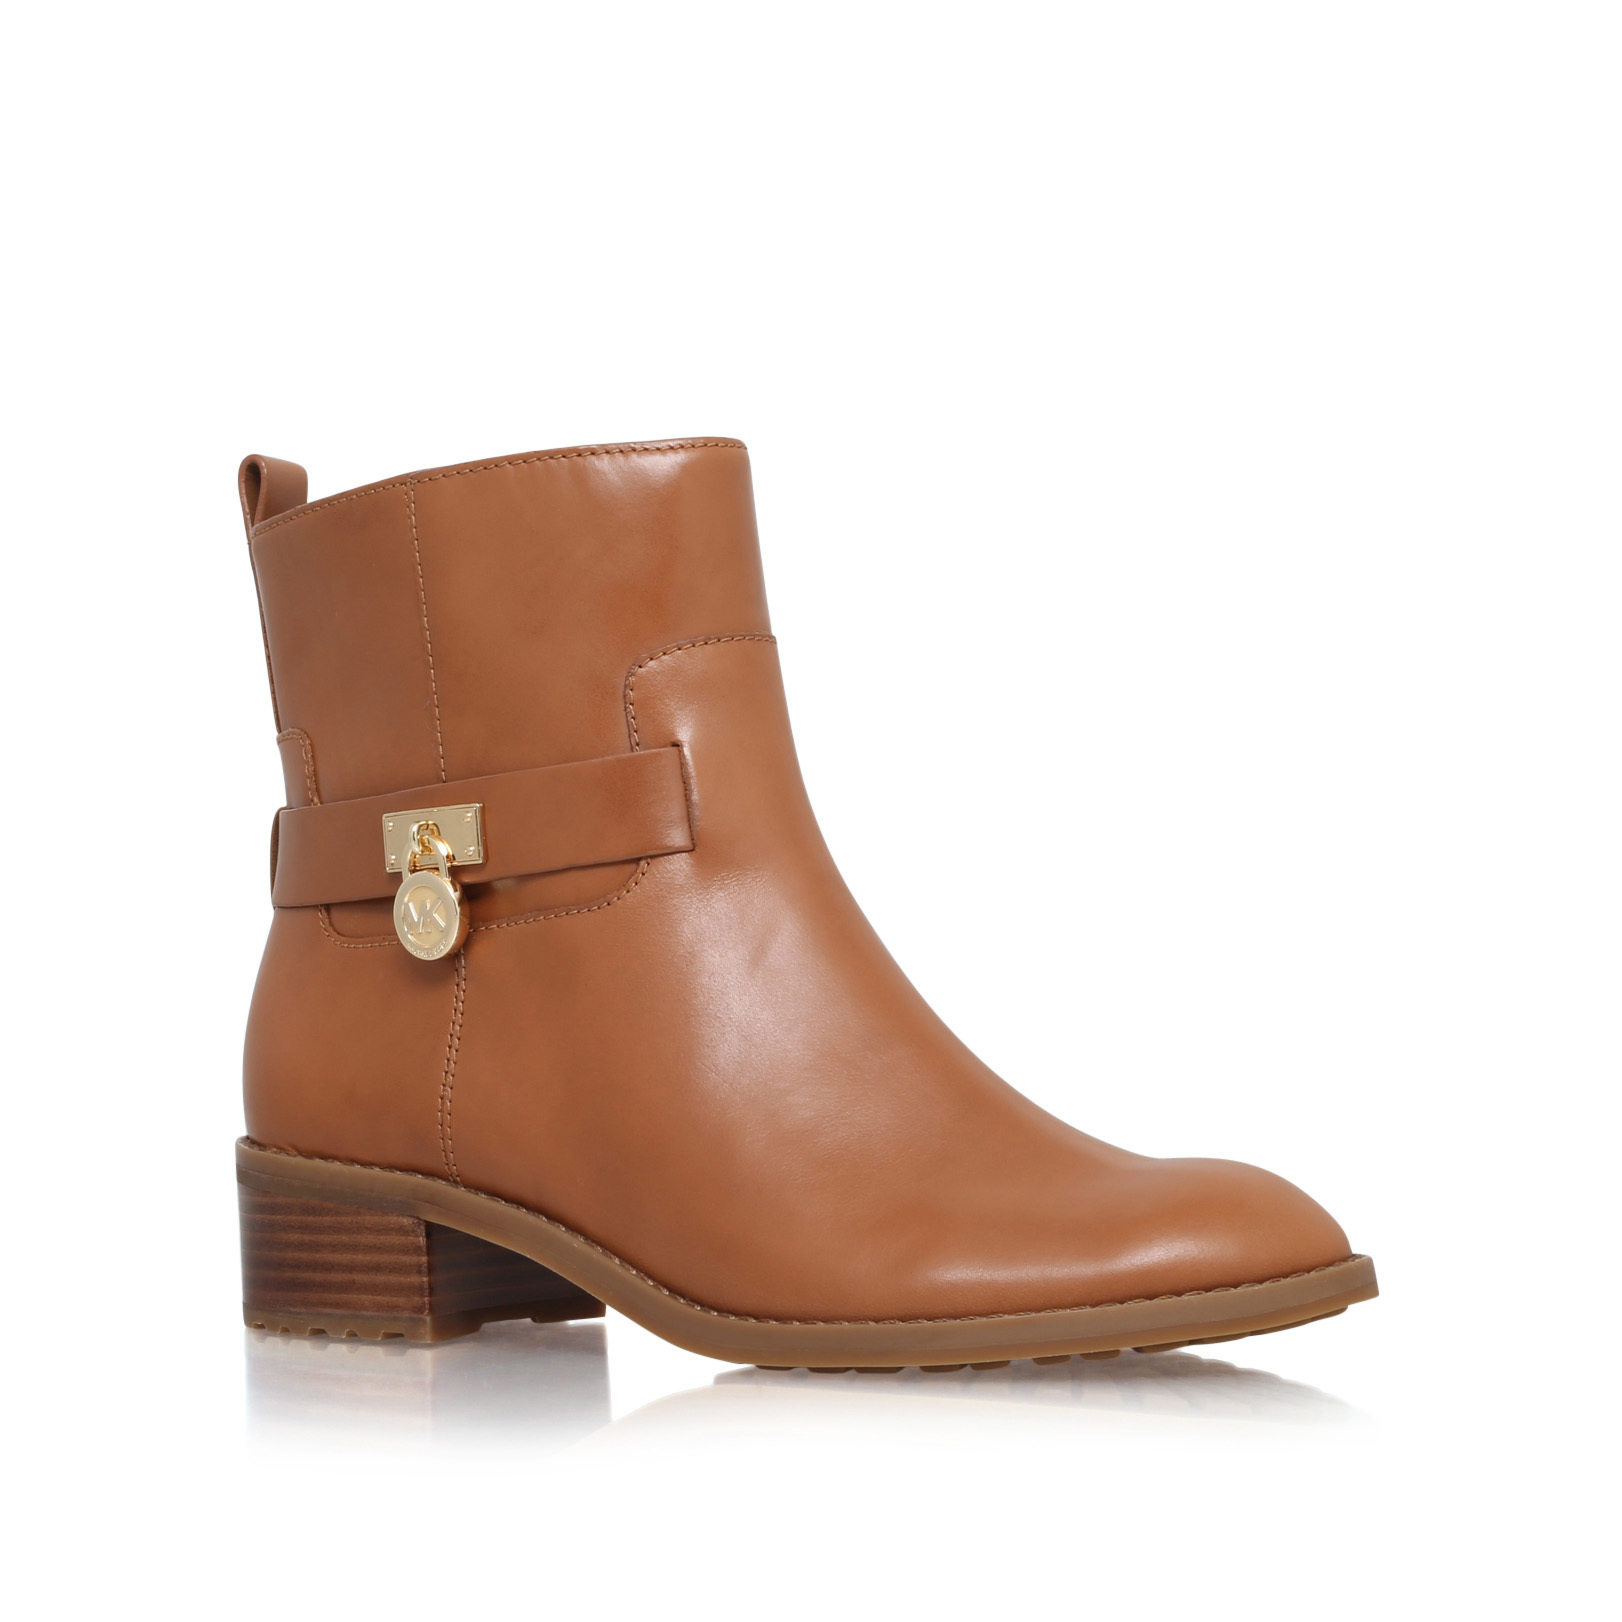 RYAN ANKLE BOOT